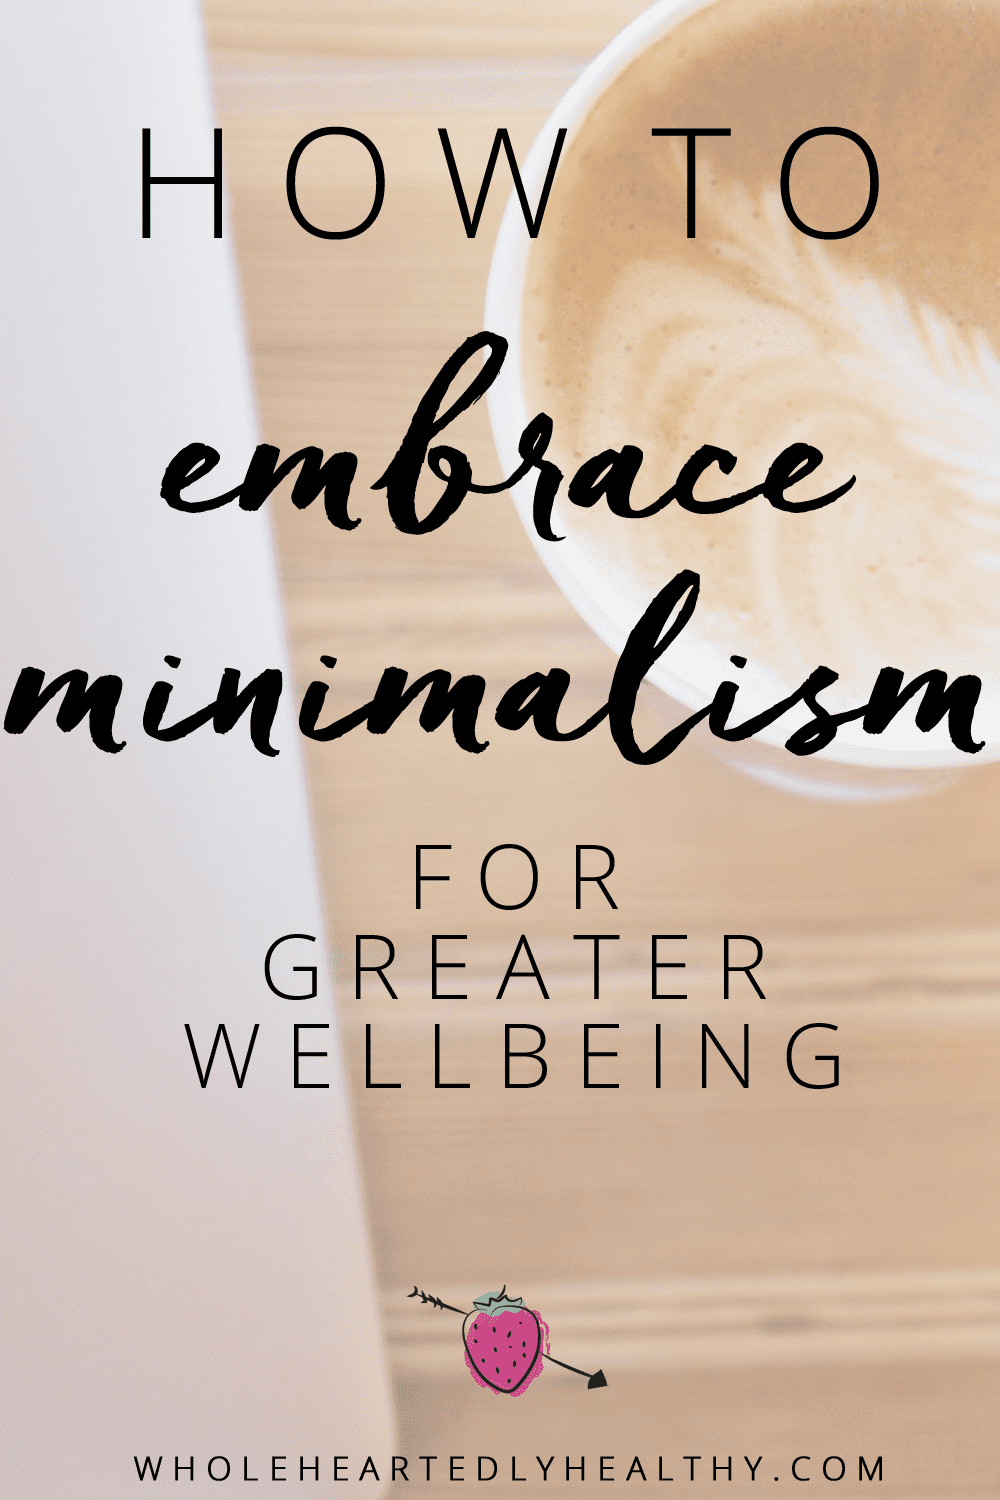 minimalism for wellbeing